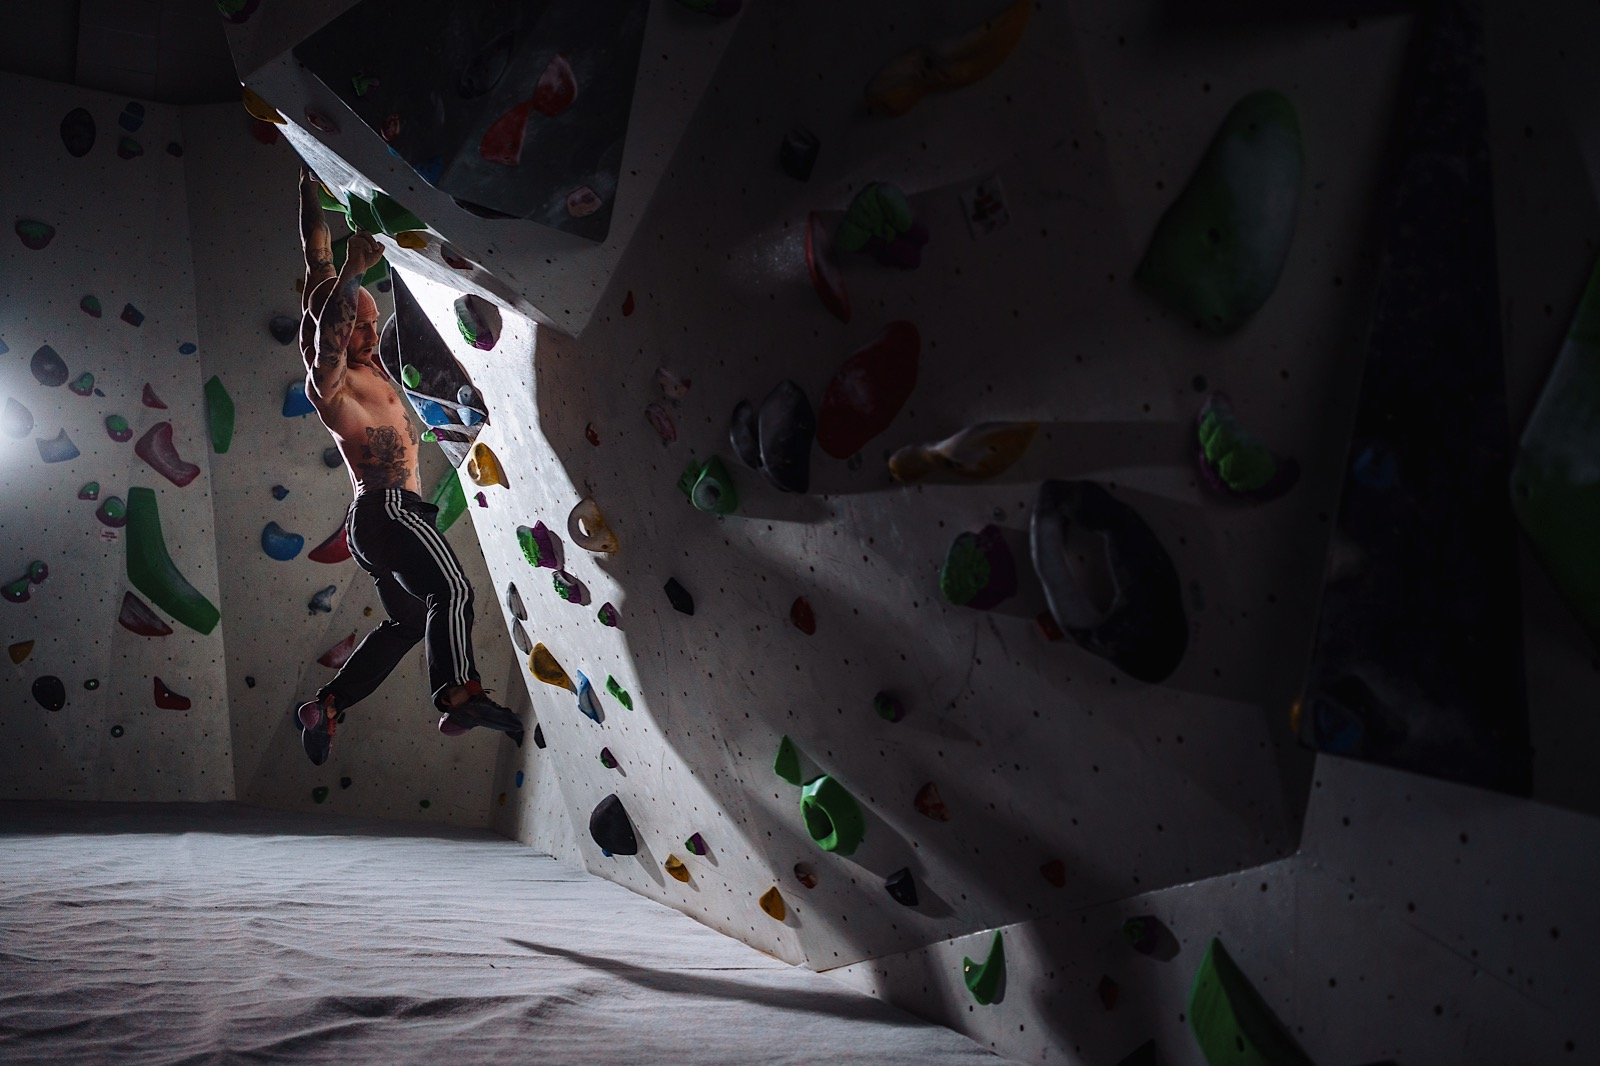 Rockclimber hanging from overhang on climbing wall